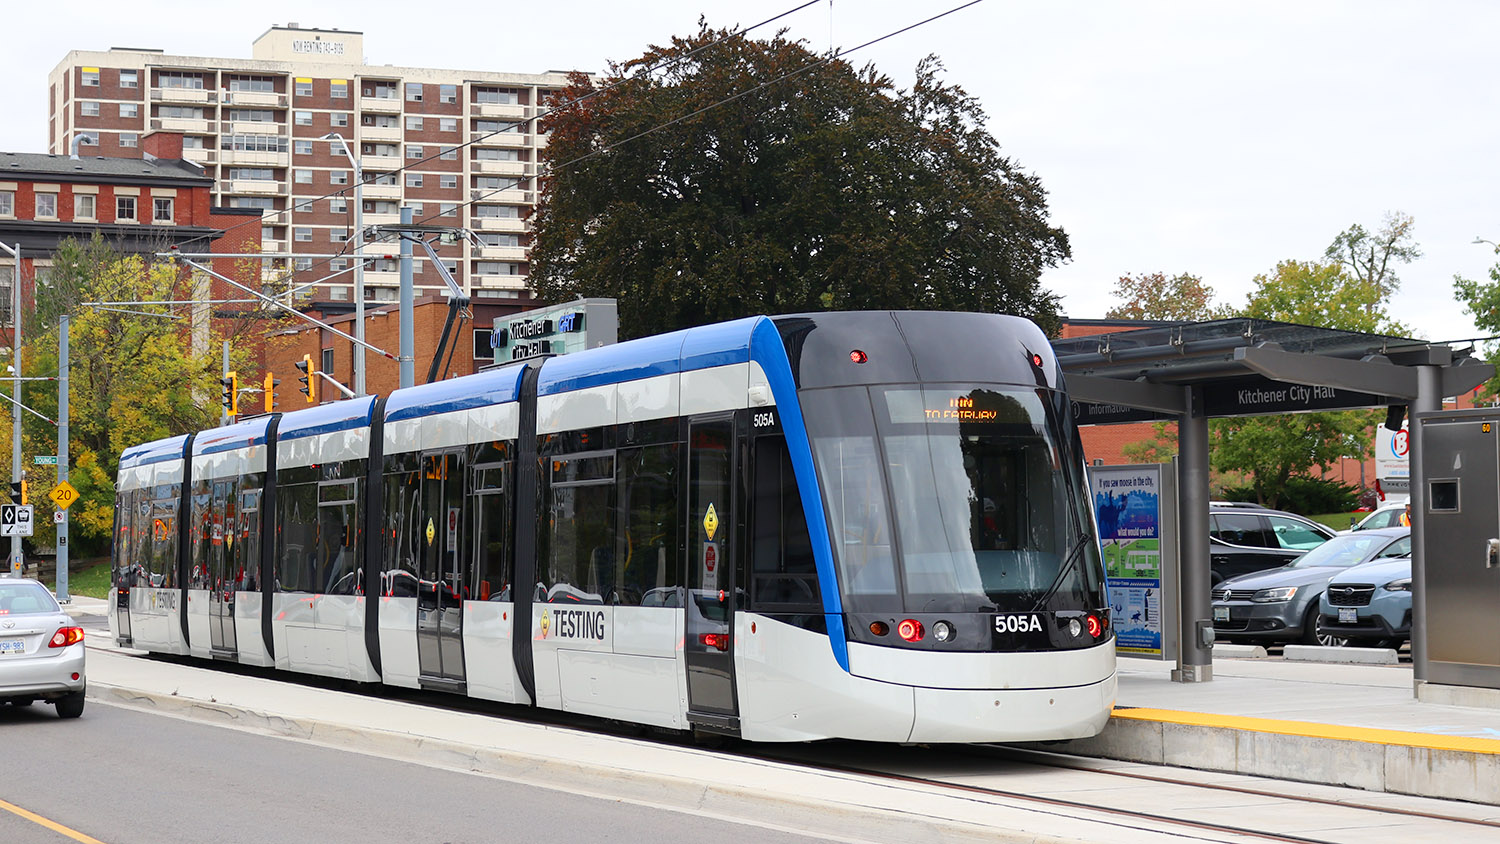 A Light Rapid Transit Train being tested at the Kitchener City Hall Station as part of the Grand River Transit System in 2018. Image captured by user *Youngjin, licensed by CC BY-SA 3.0.